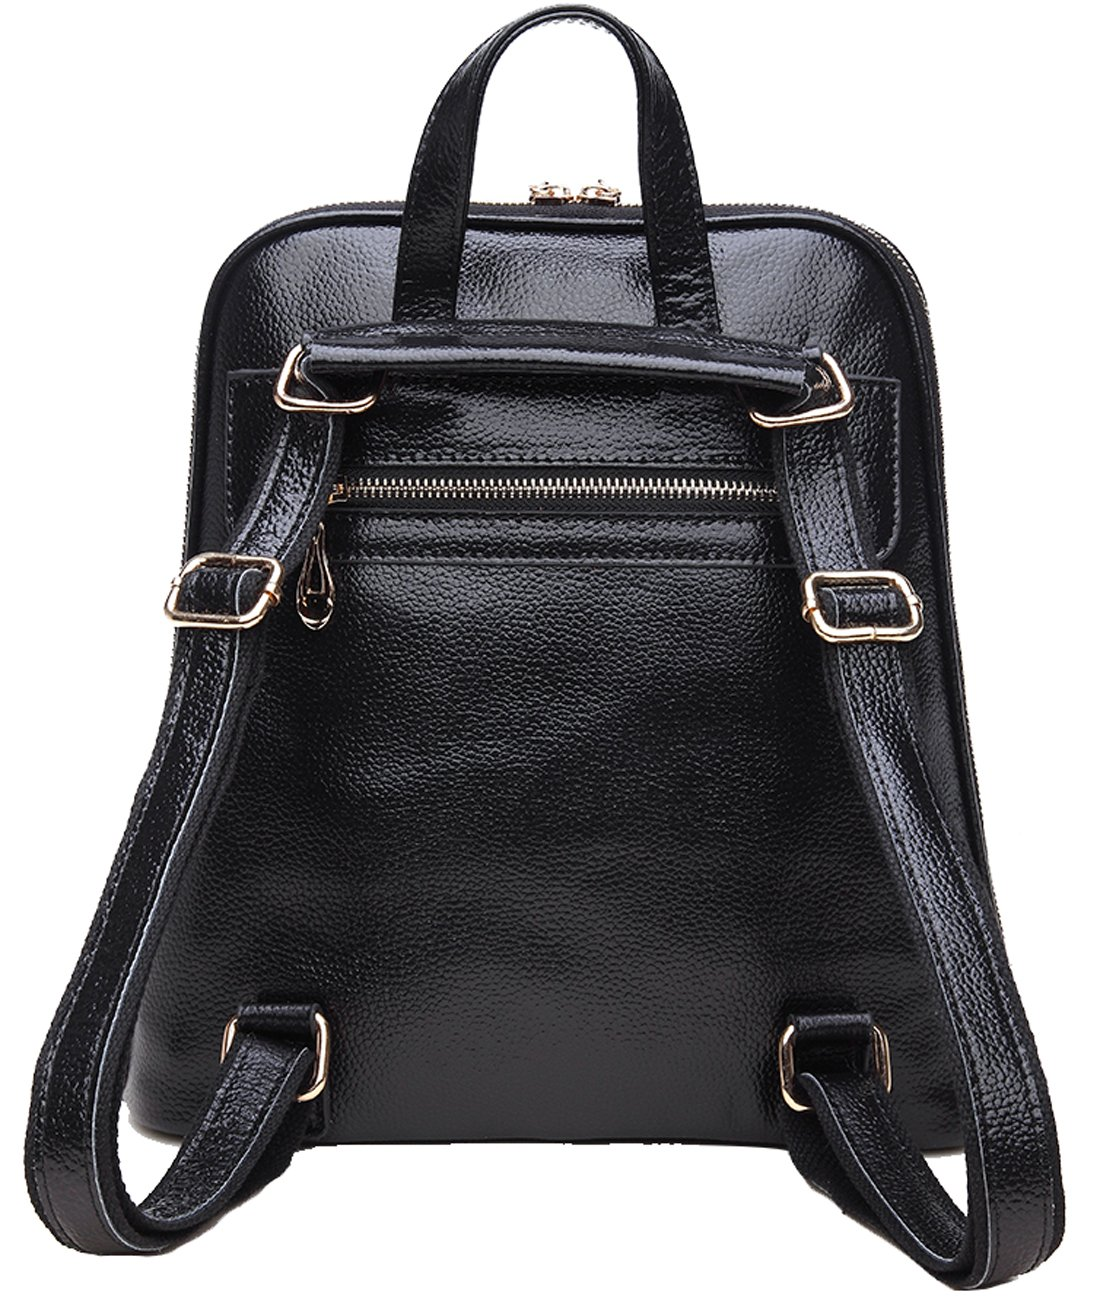 564ae8850019 Coolcy New Fashion Women s Genuine Leather Backpack Casual Shoulder Bag ( Black)